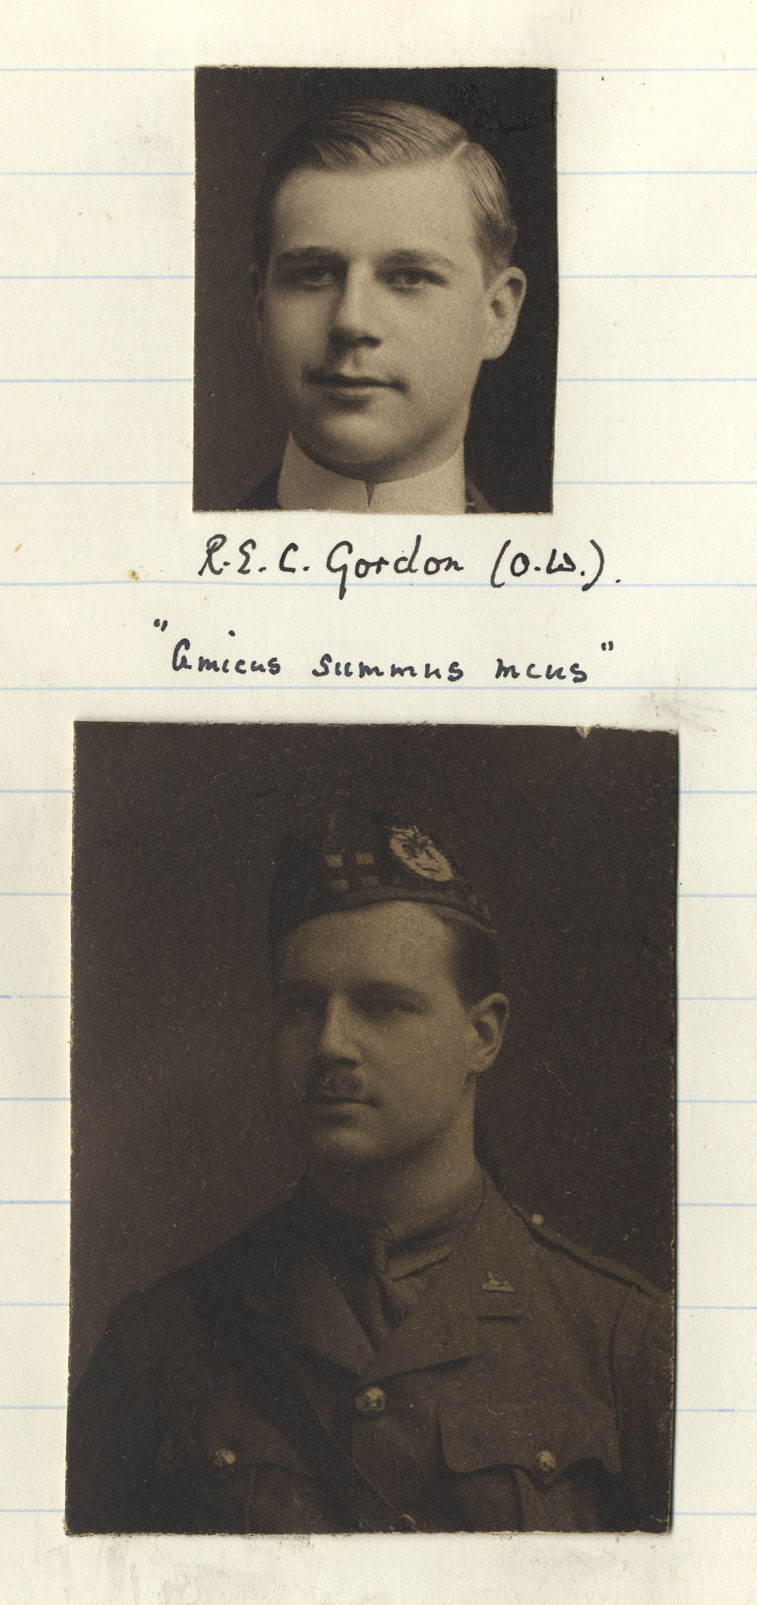 Two photographs of R.E.C. Gordon